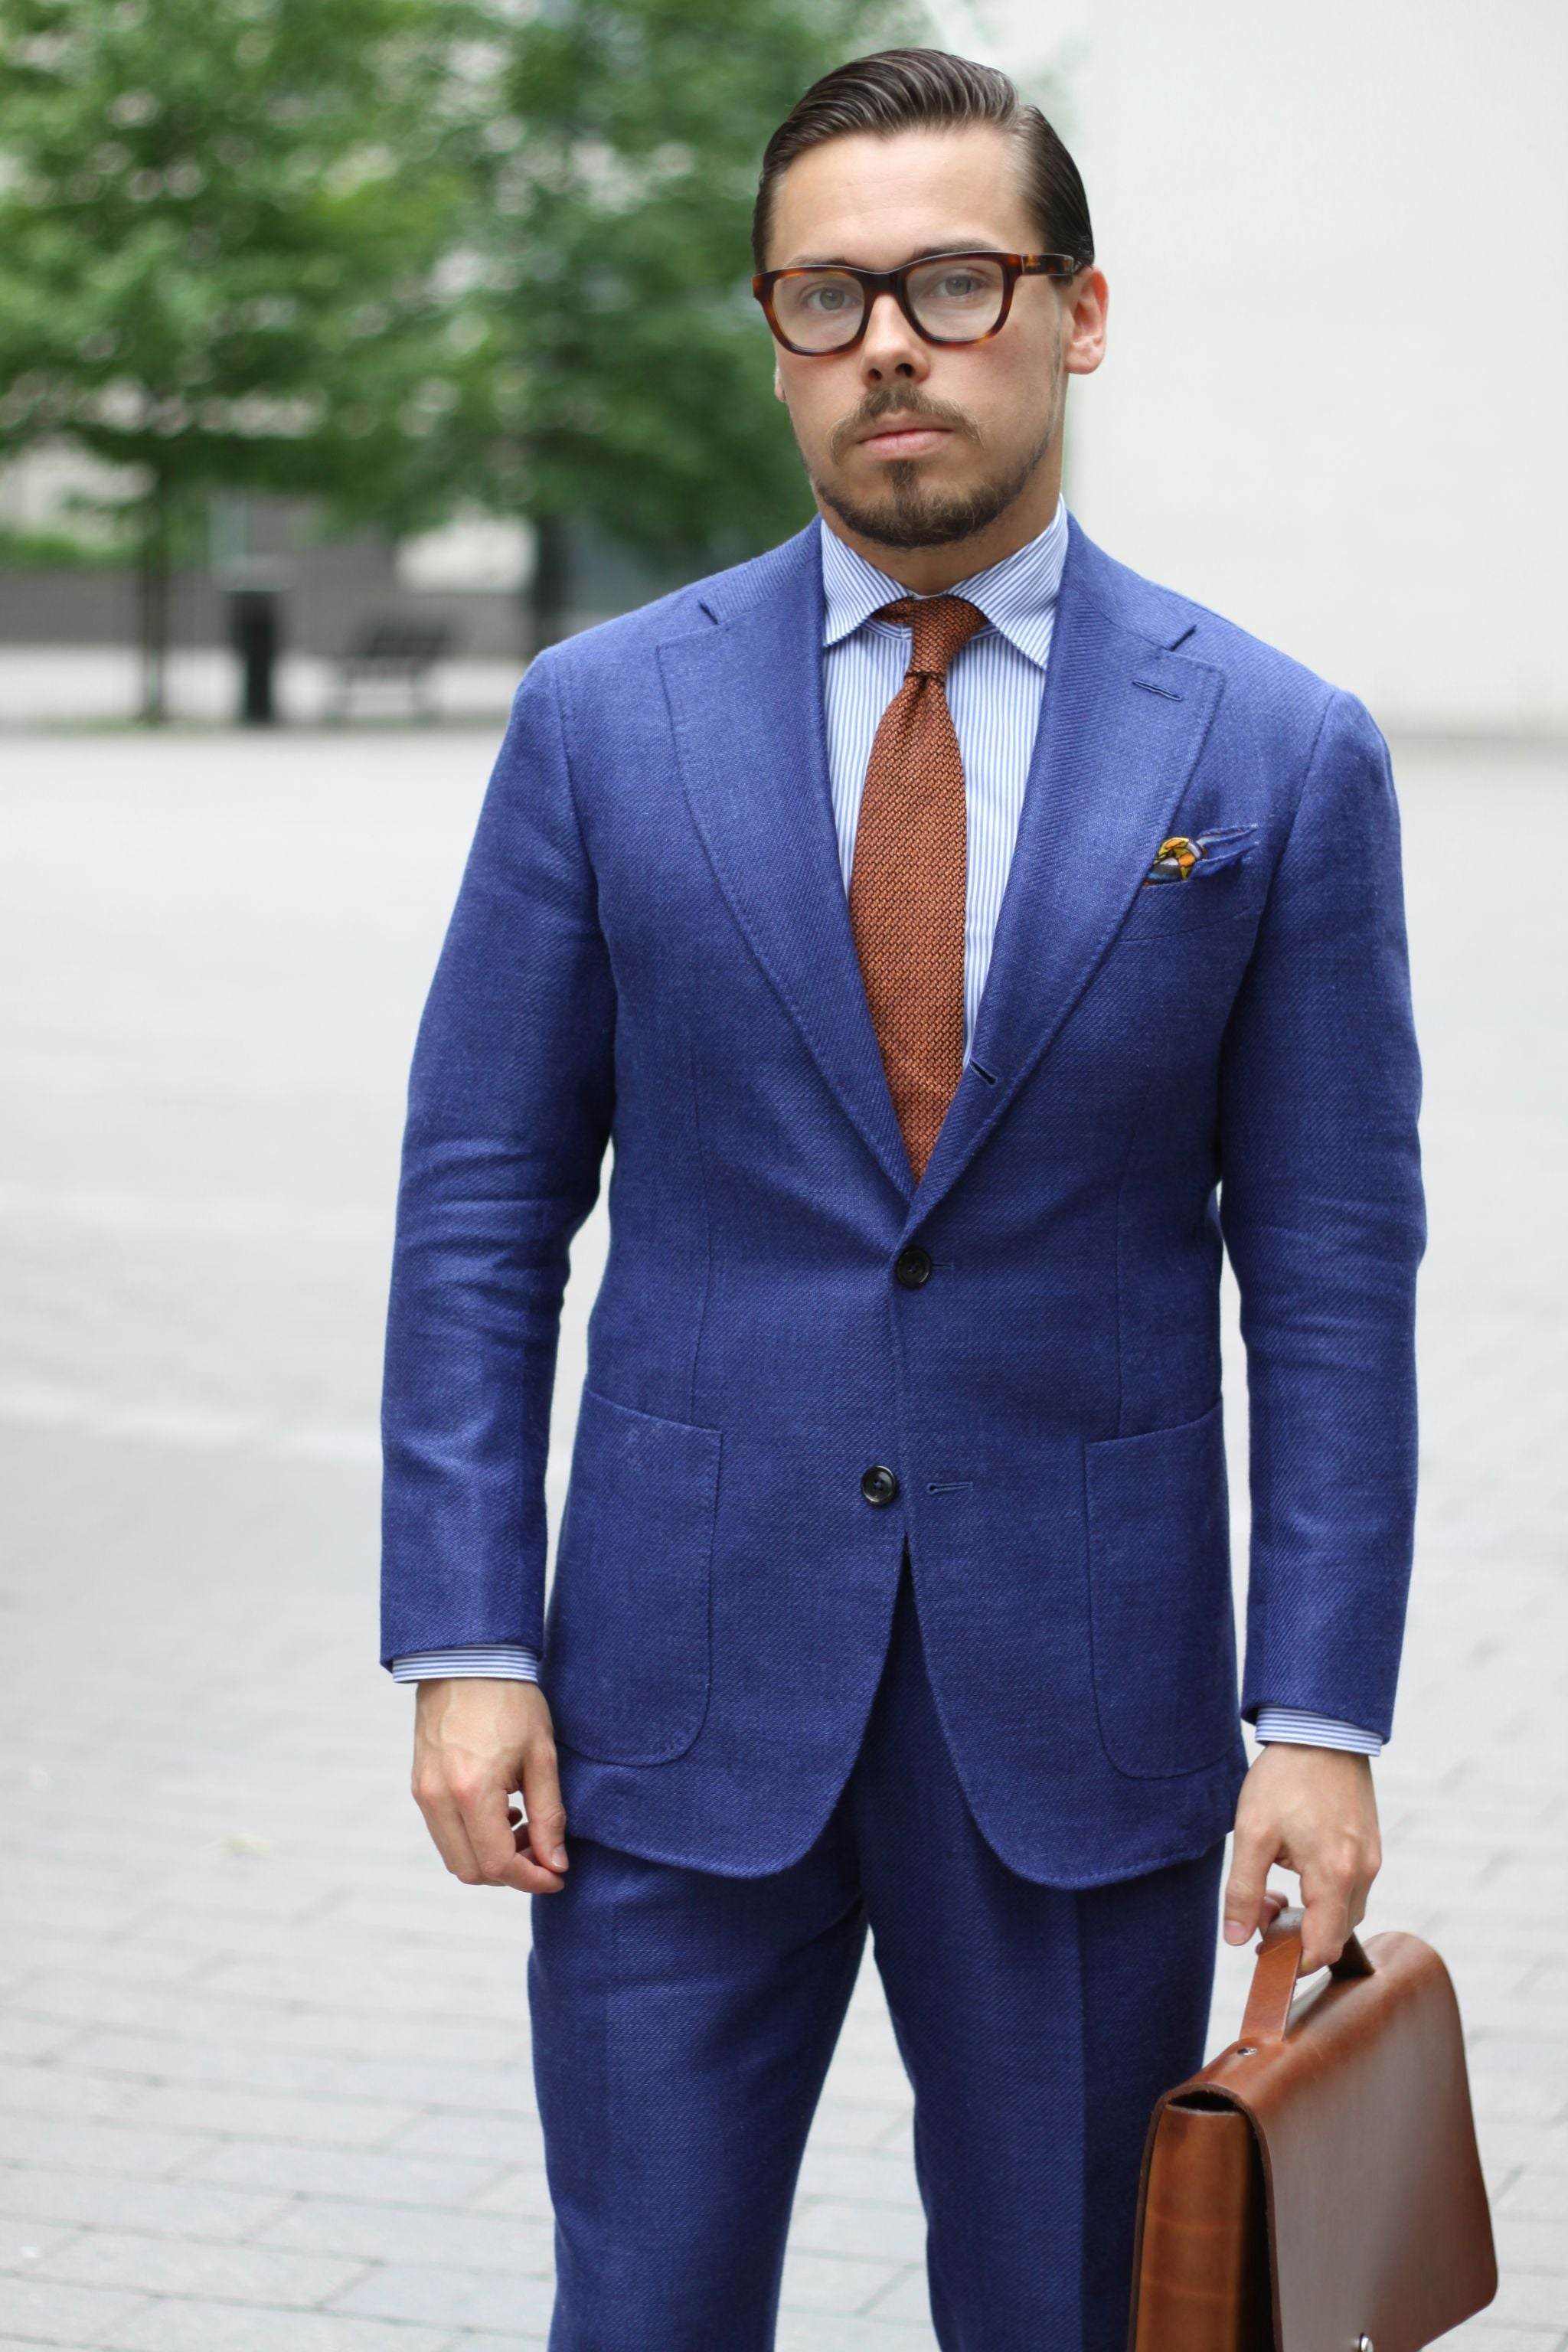 Navy blue suit with orange tie and striped shirt